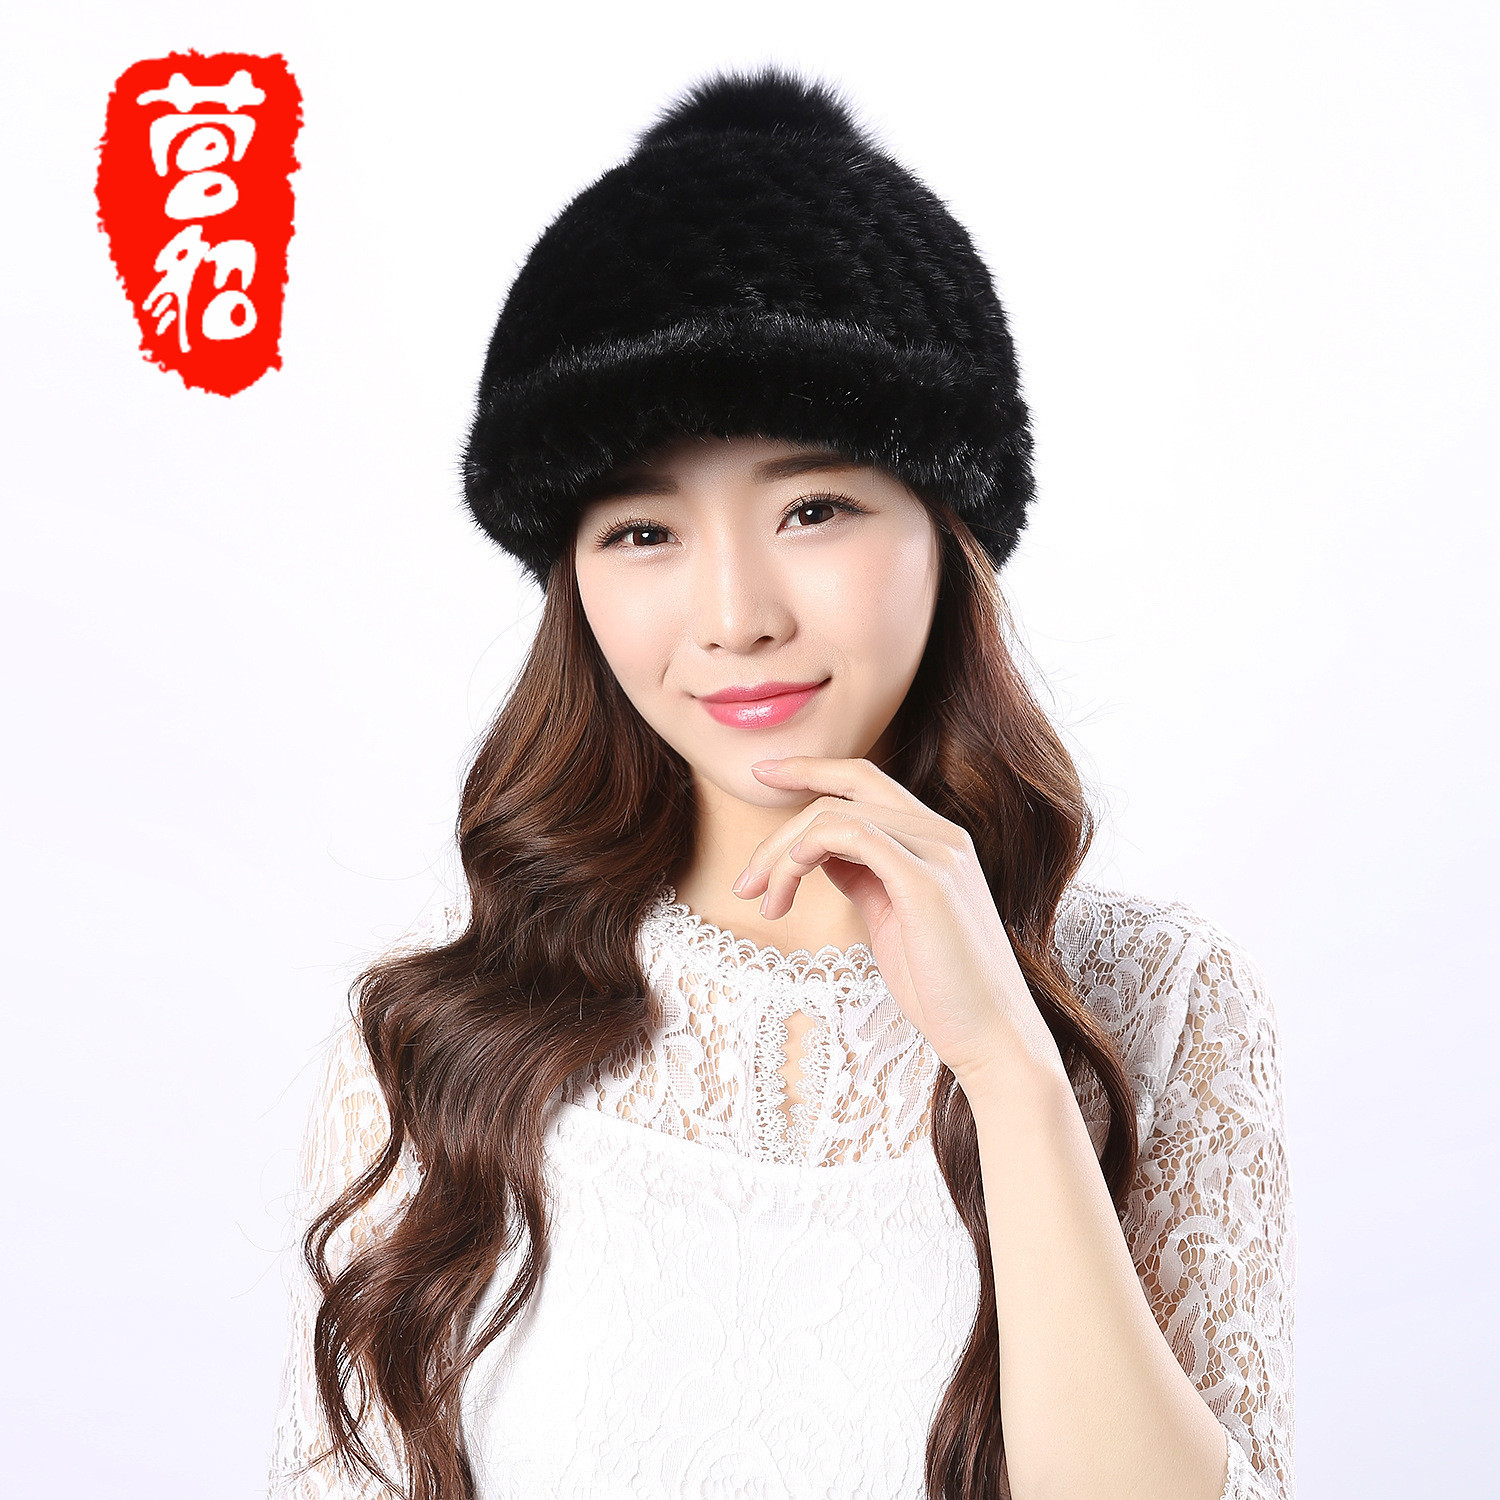 hot fashion Europe and United States popular mink fur girl hat twill hat ladies autumn and winter fashion warm thickening cap europe and the united states popular hotel chair south africa fashion office stool free shipping